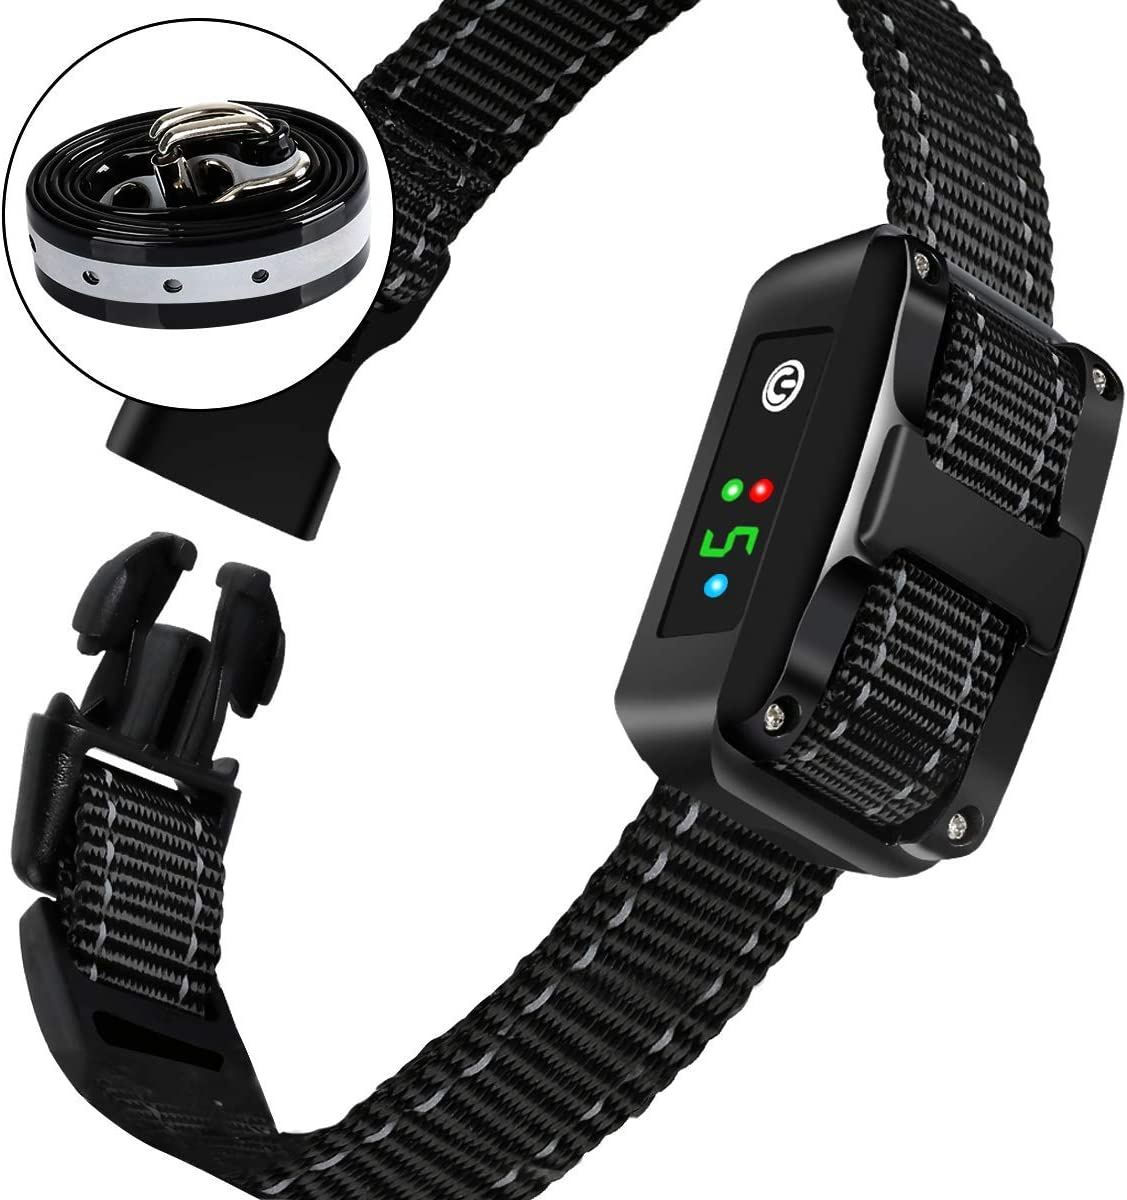 Newest 2019 Rechargeable Bark Collar - Upgraded Smart Humane Dog Anti-Barking Device - Vibration, Beep Mode for Small, Medium, Large Dogs All Breeds - IPX5 Waterproof SJCCKJ